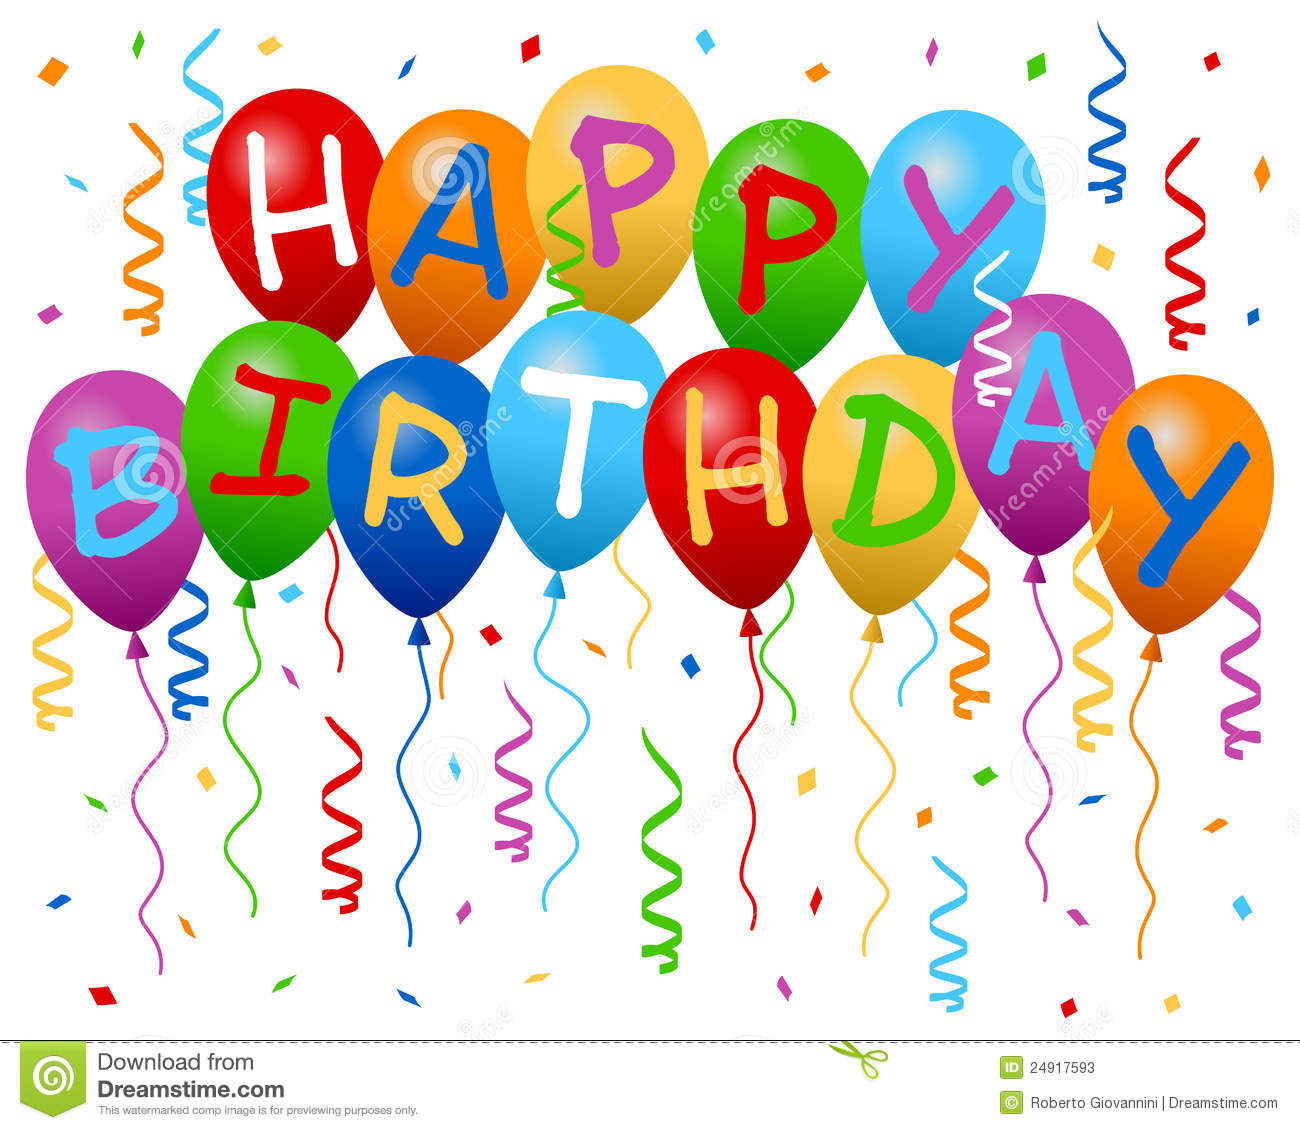 Happy Birthday Balloons Banner Stock Photos - Image: 24917593